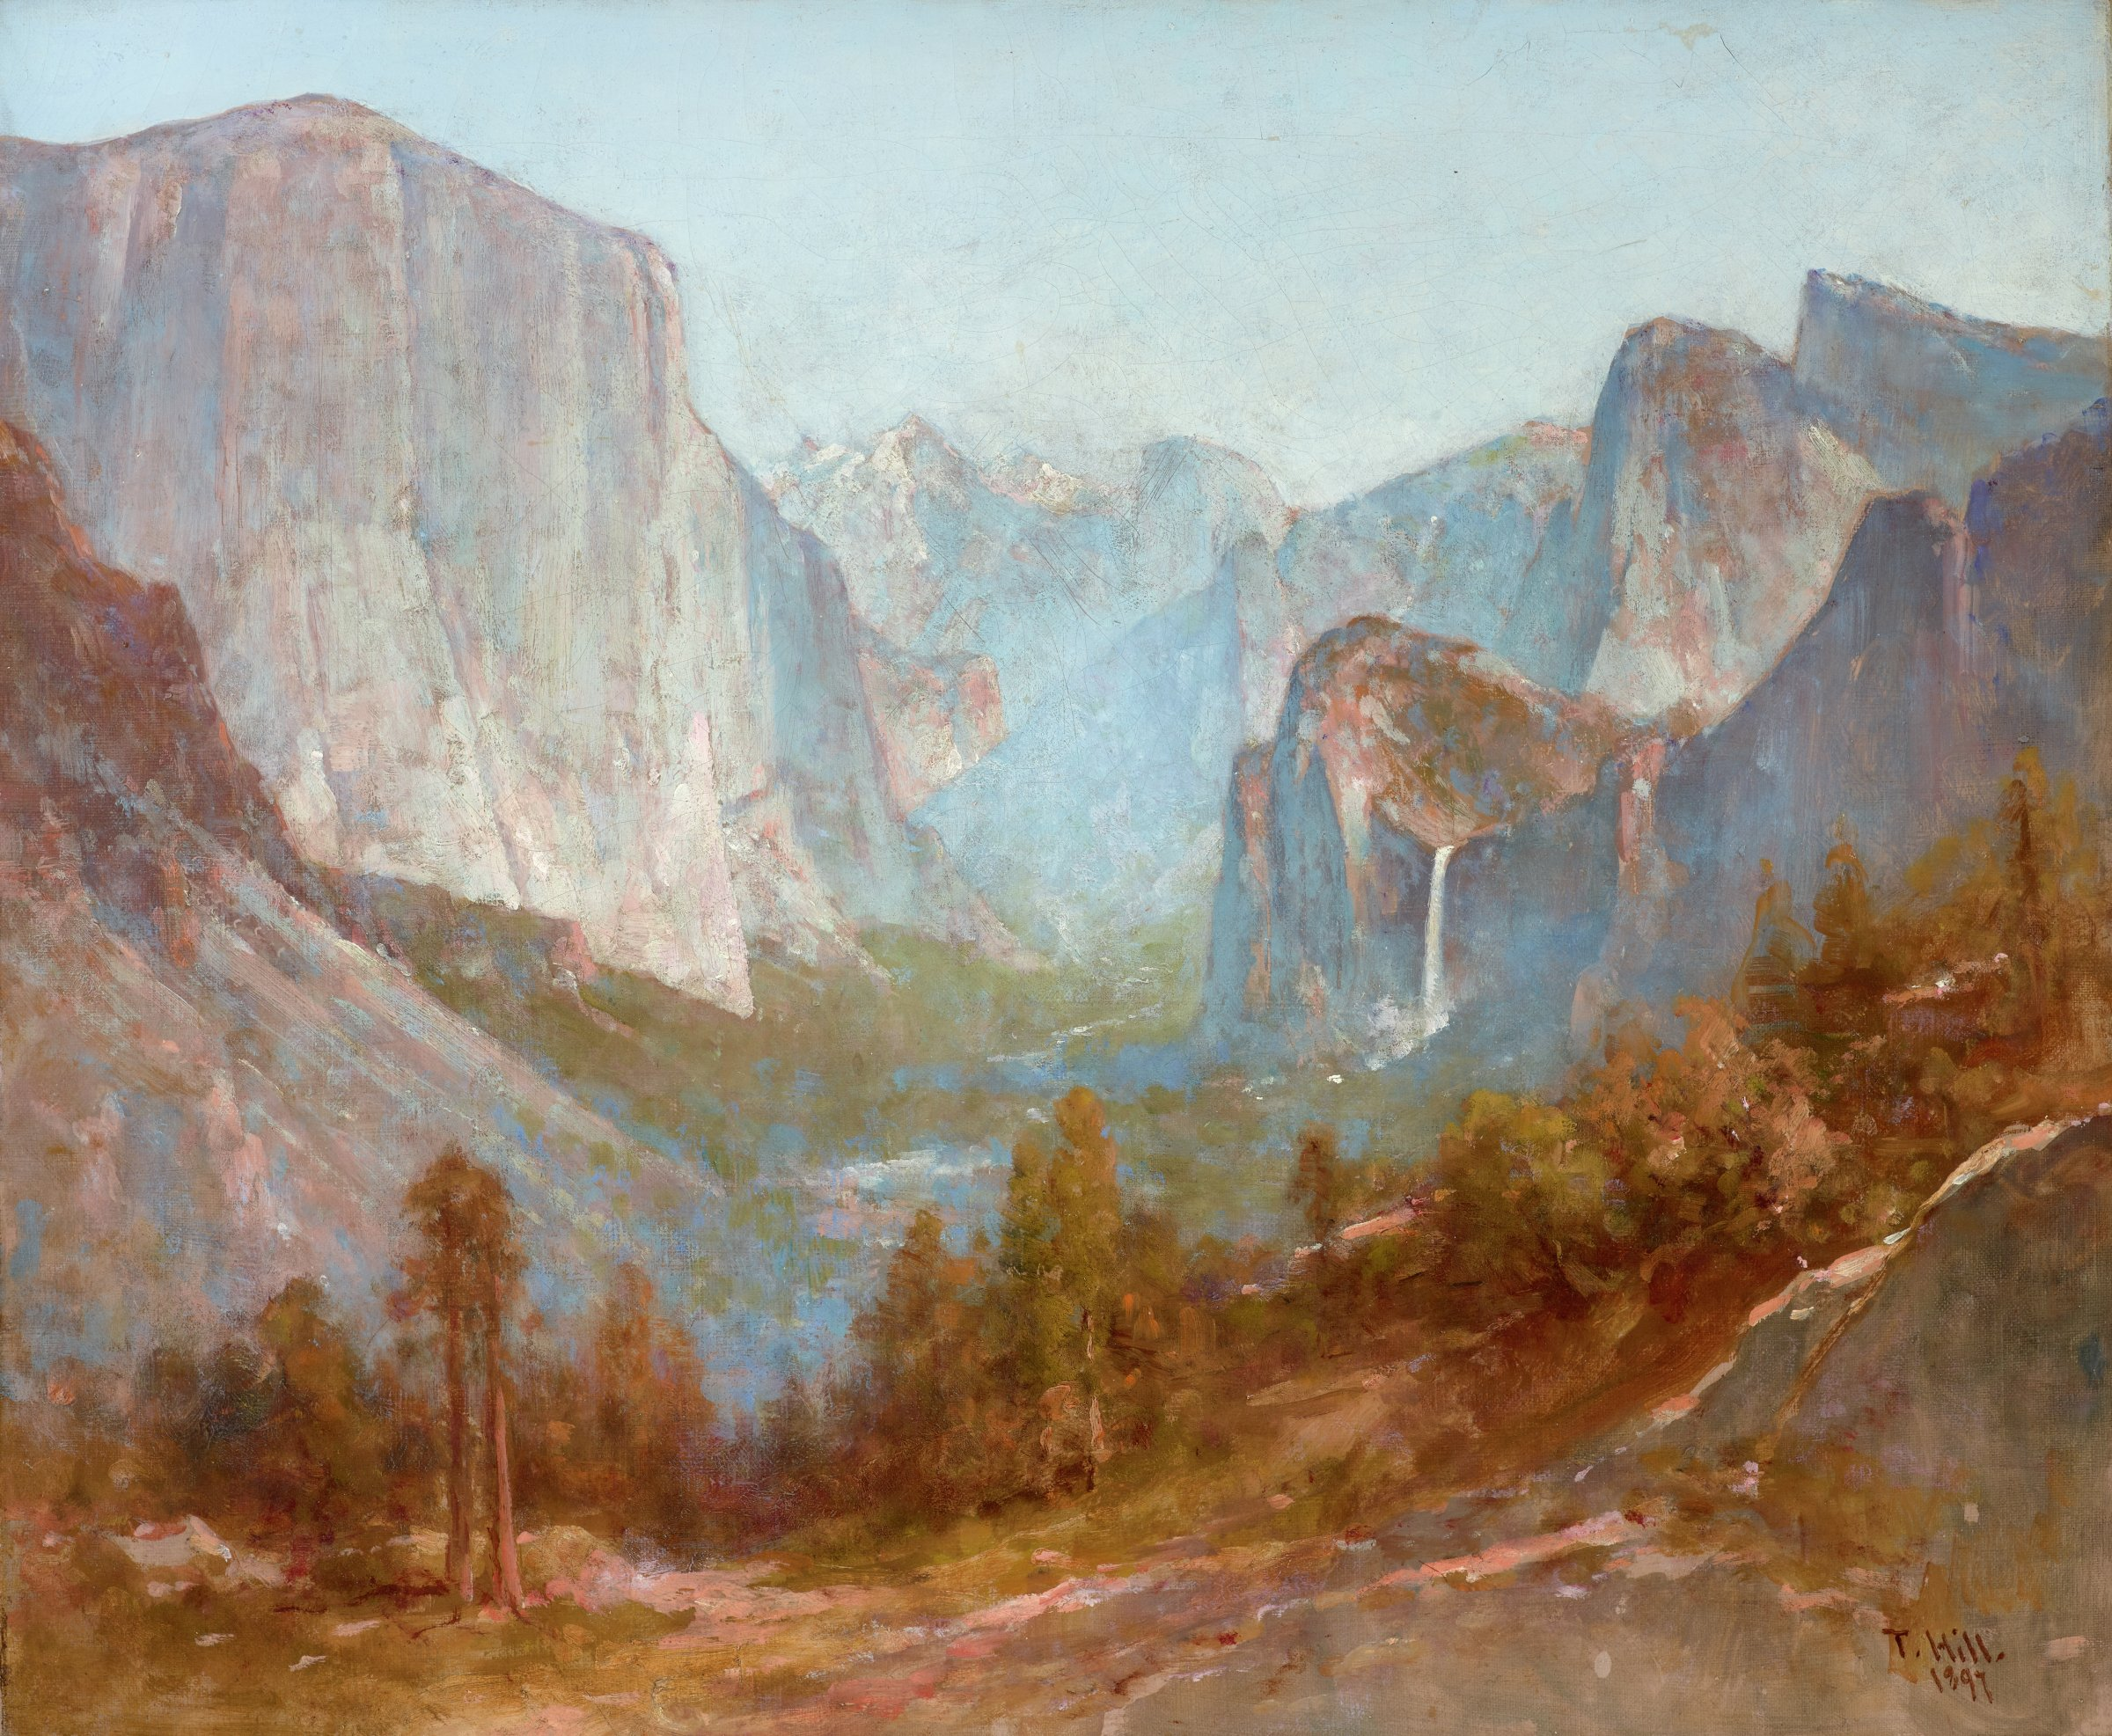 This painting represents a view of a valley. Rocky, treeless mountains rise to the left and right size of the canvas, with sandy, yellow-brown ground, trees, and shrubs in the foreground. The purple and gray mountains are shrouded in mist and recede into the background.